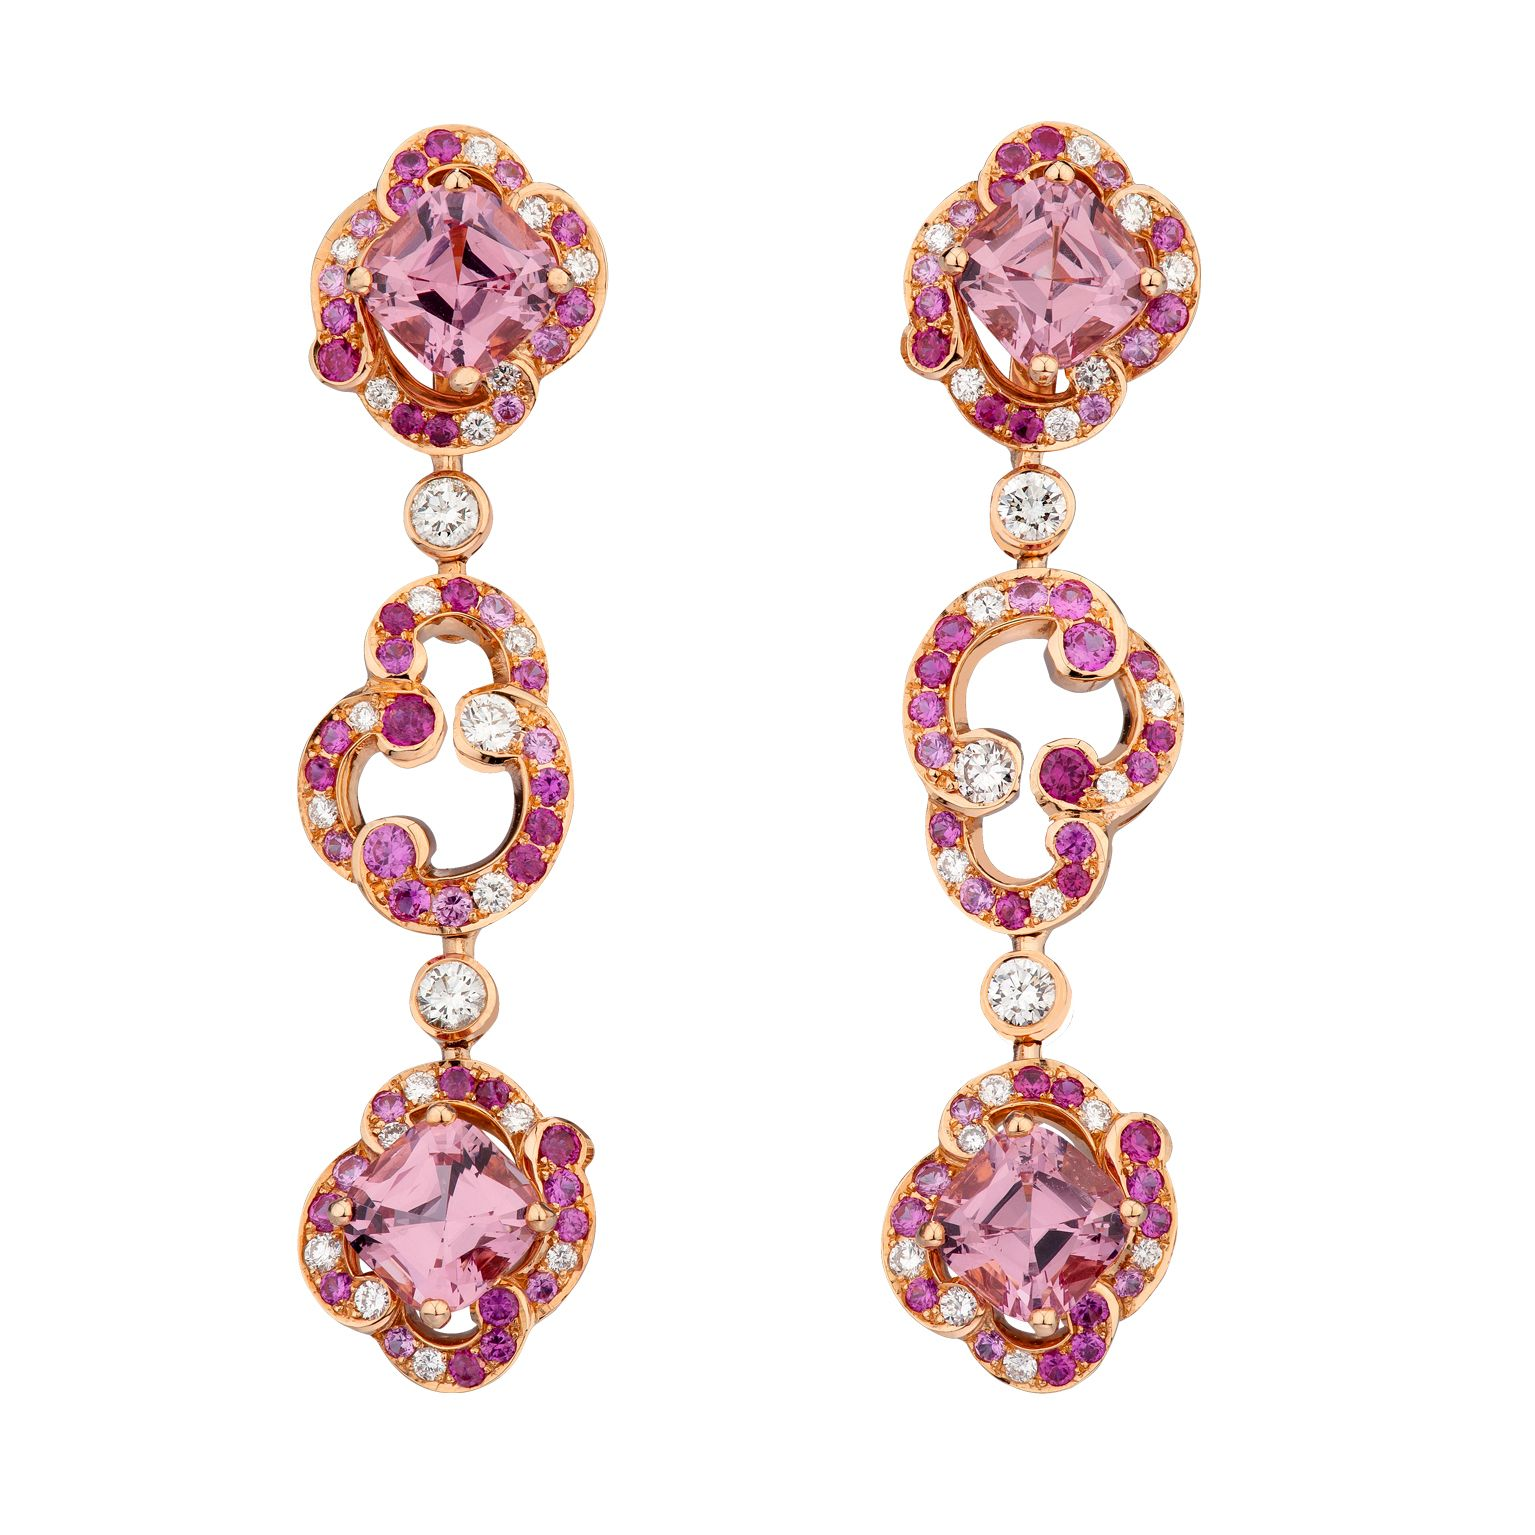 Fabergé Rococo Pink Spinel Long Earrings #Fabergé #Rococo #spinel #earrings